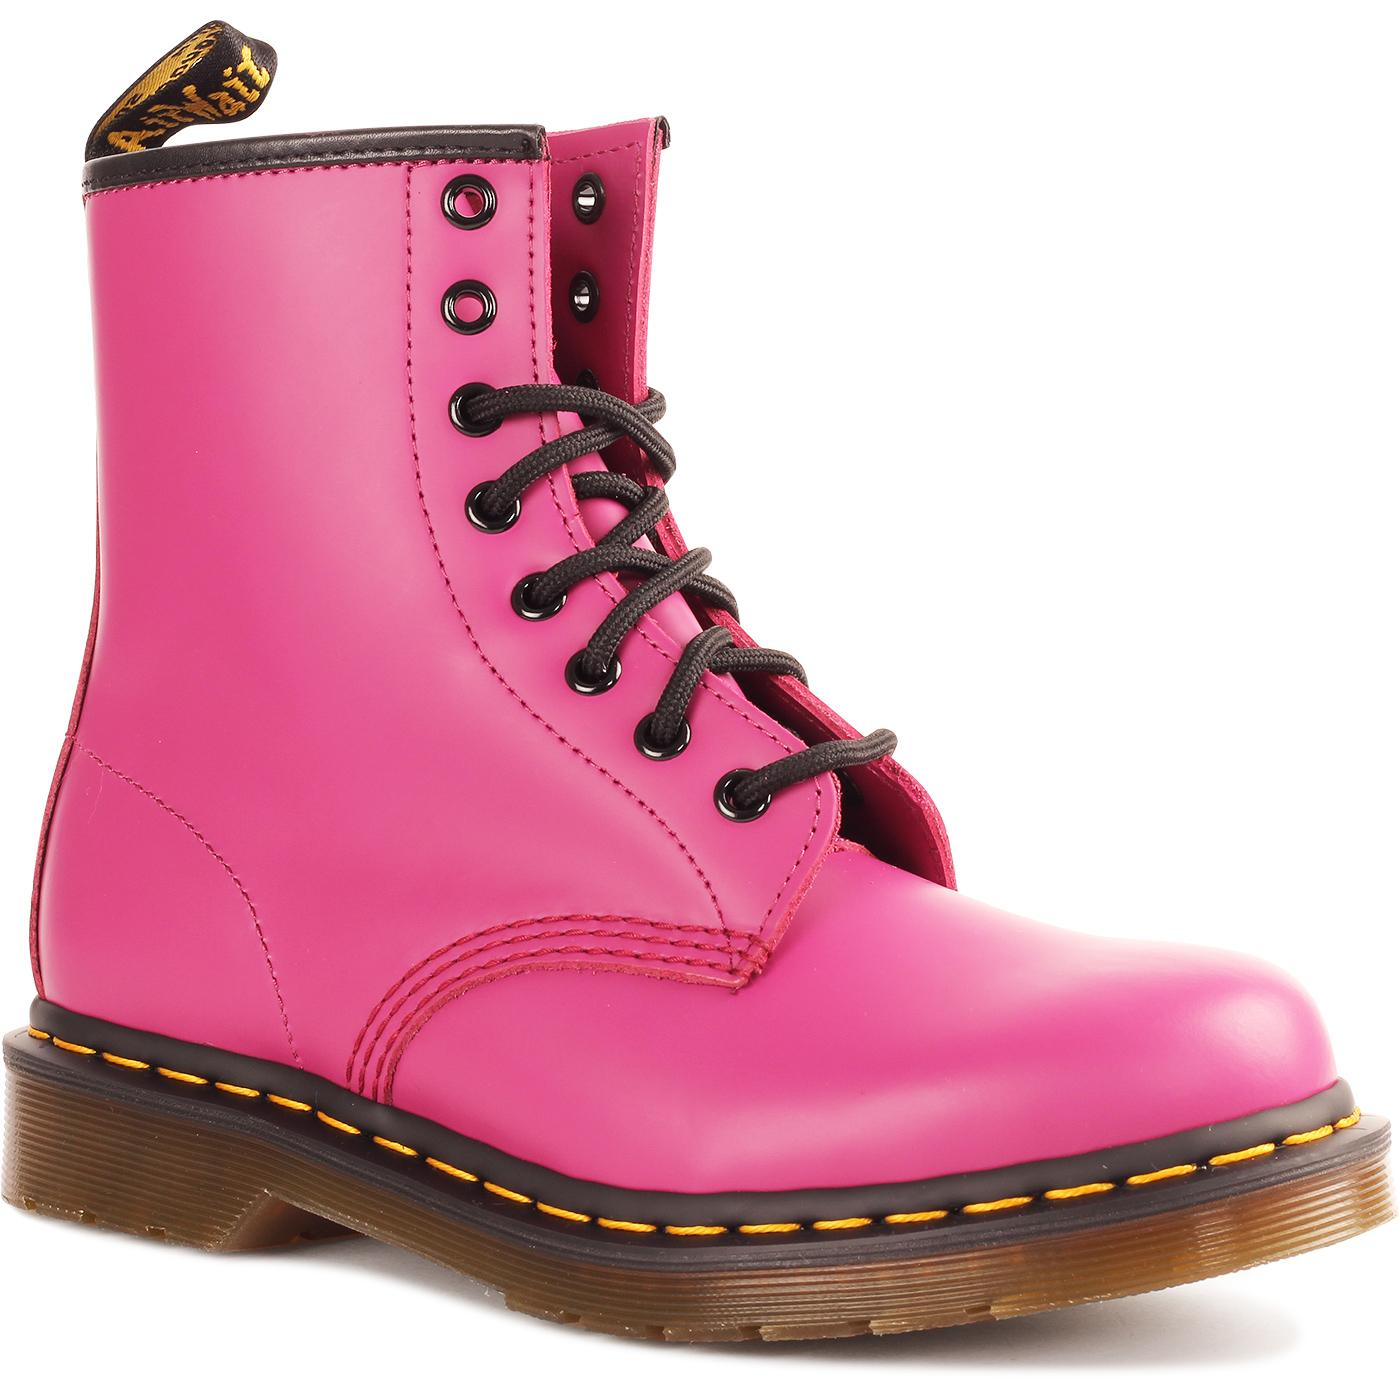 1460 DR MARTENS Retro Fuchsia Leather Ankle Boot